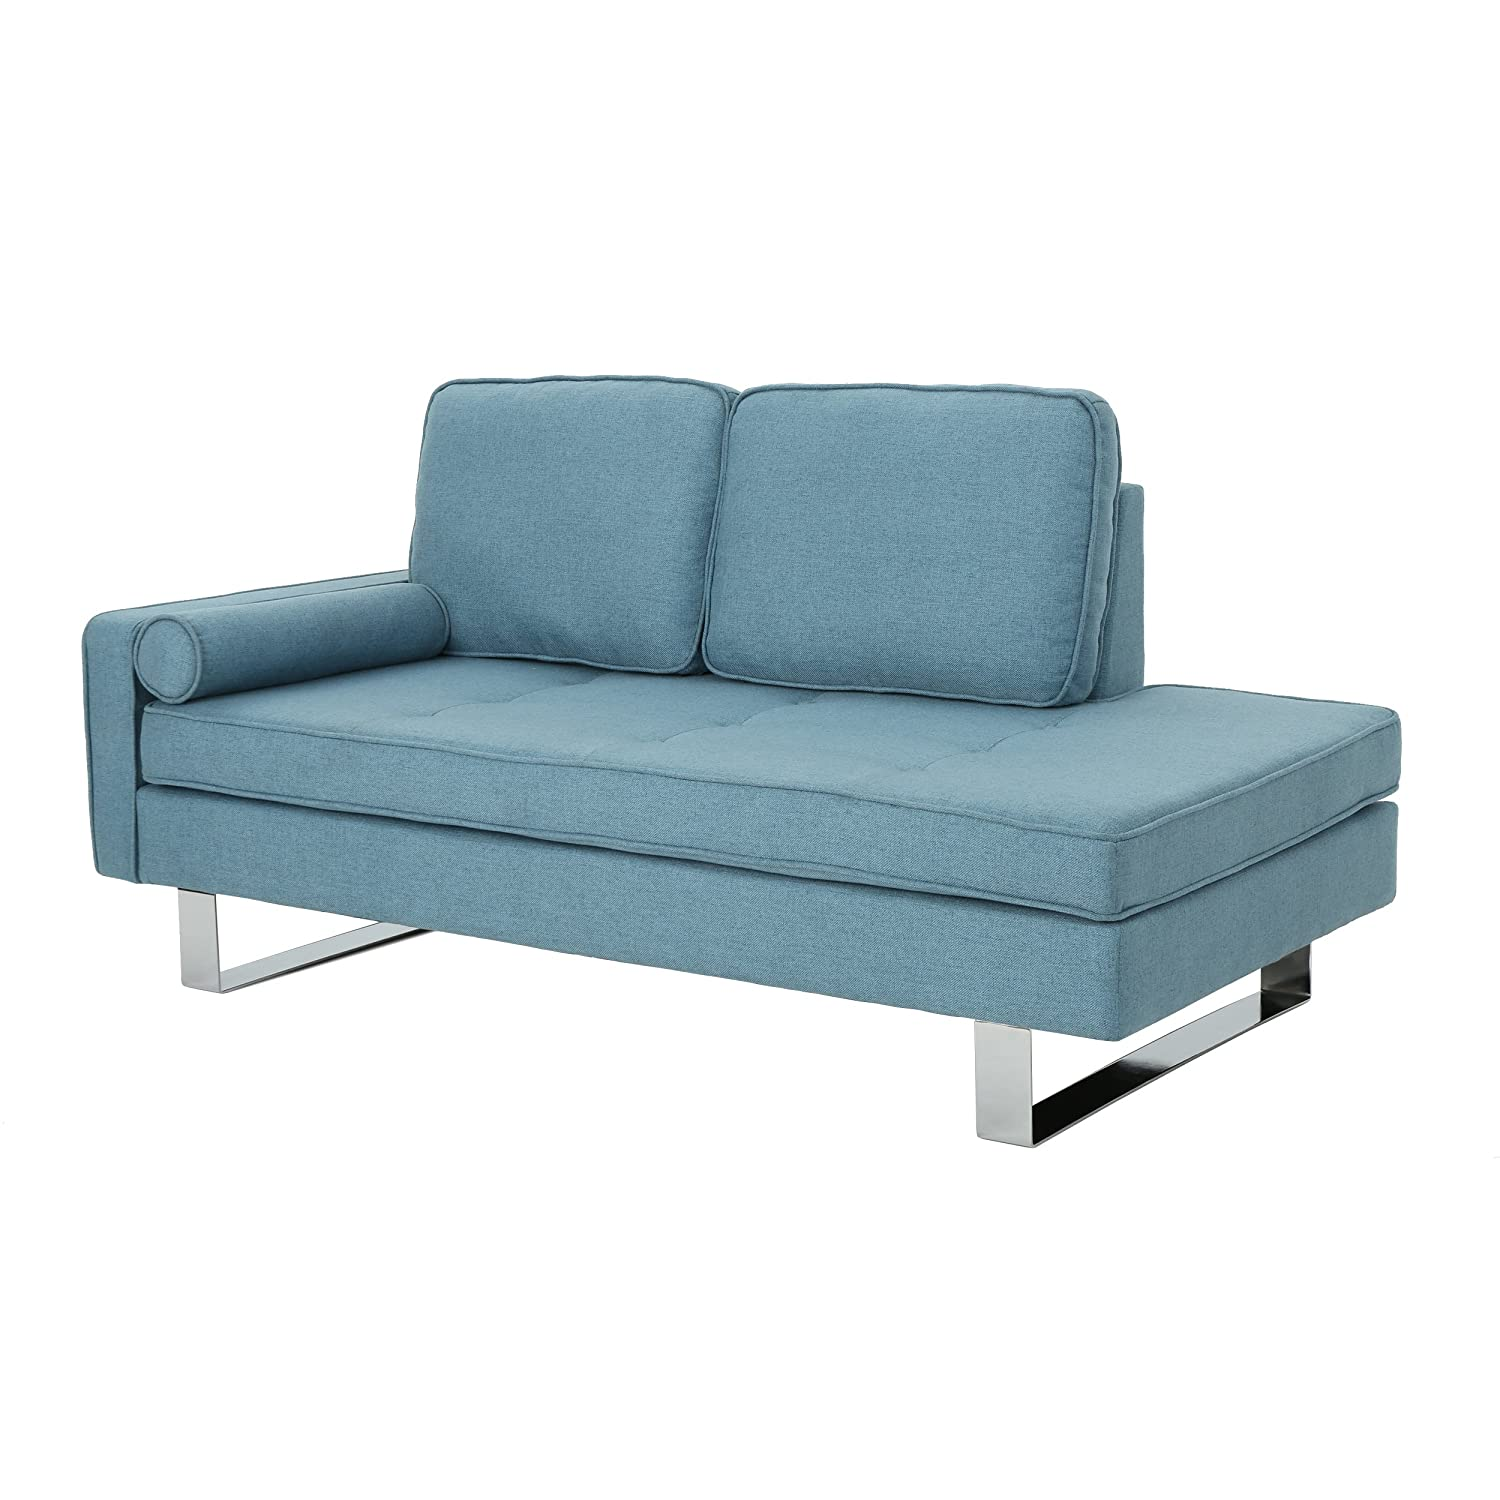 Christopher Knight Home Phelps Modern Fabric Chaise Loveseat, Blue, Silver